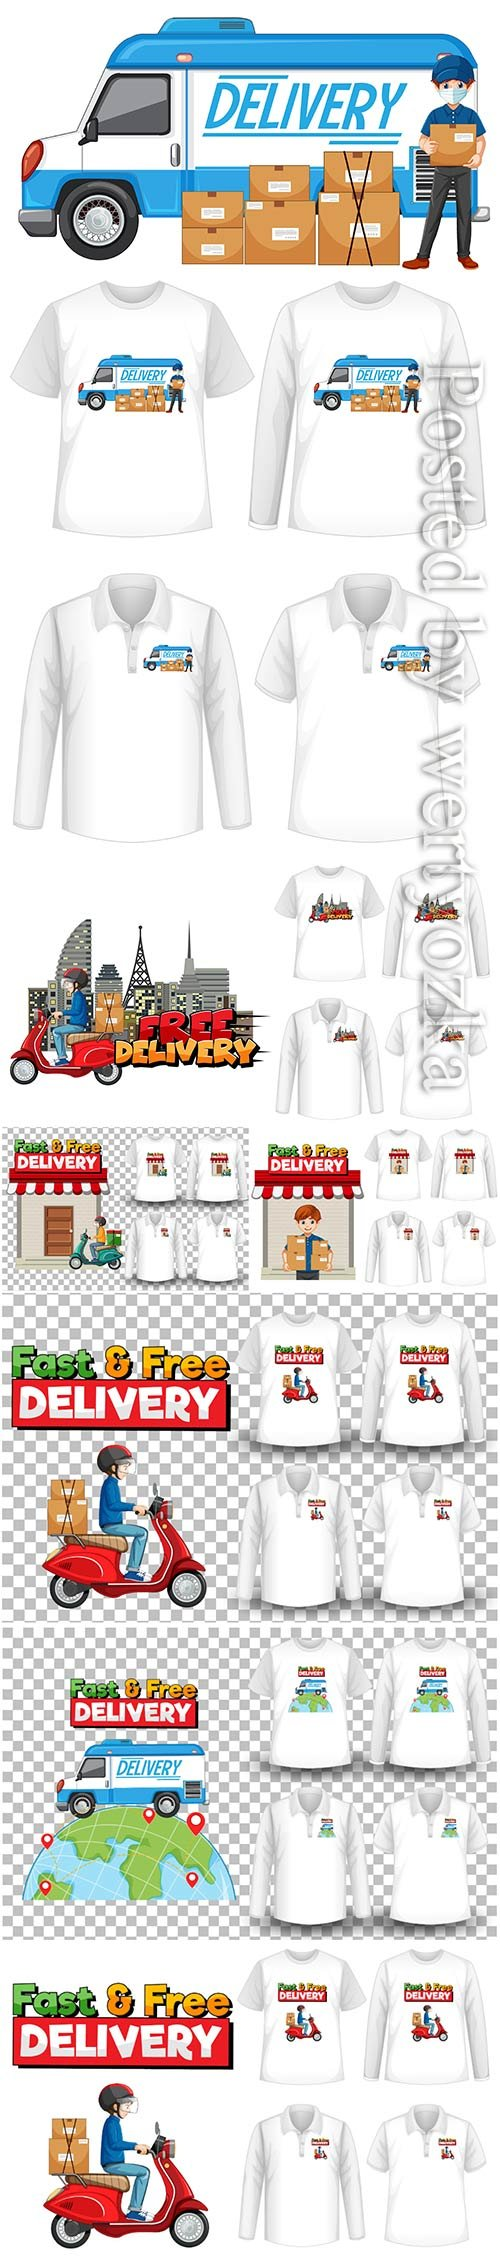 Set of mockup shirt with delivery theme in vector